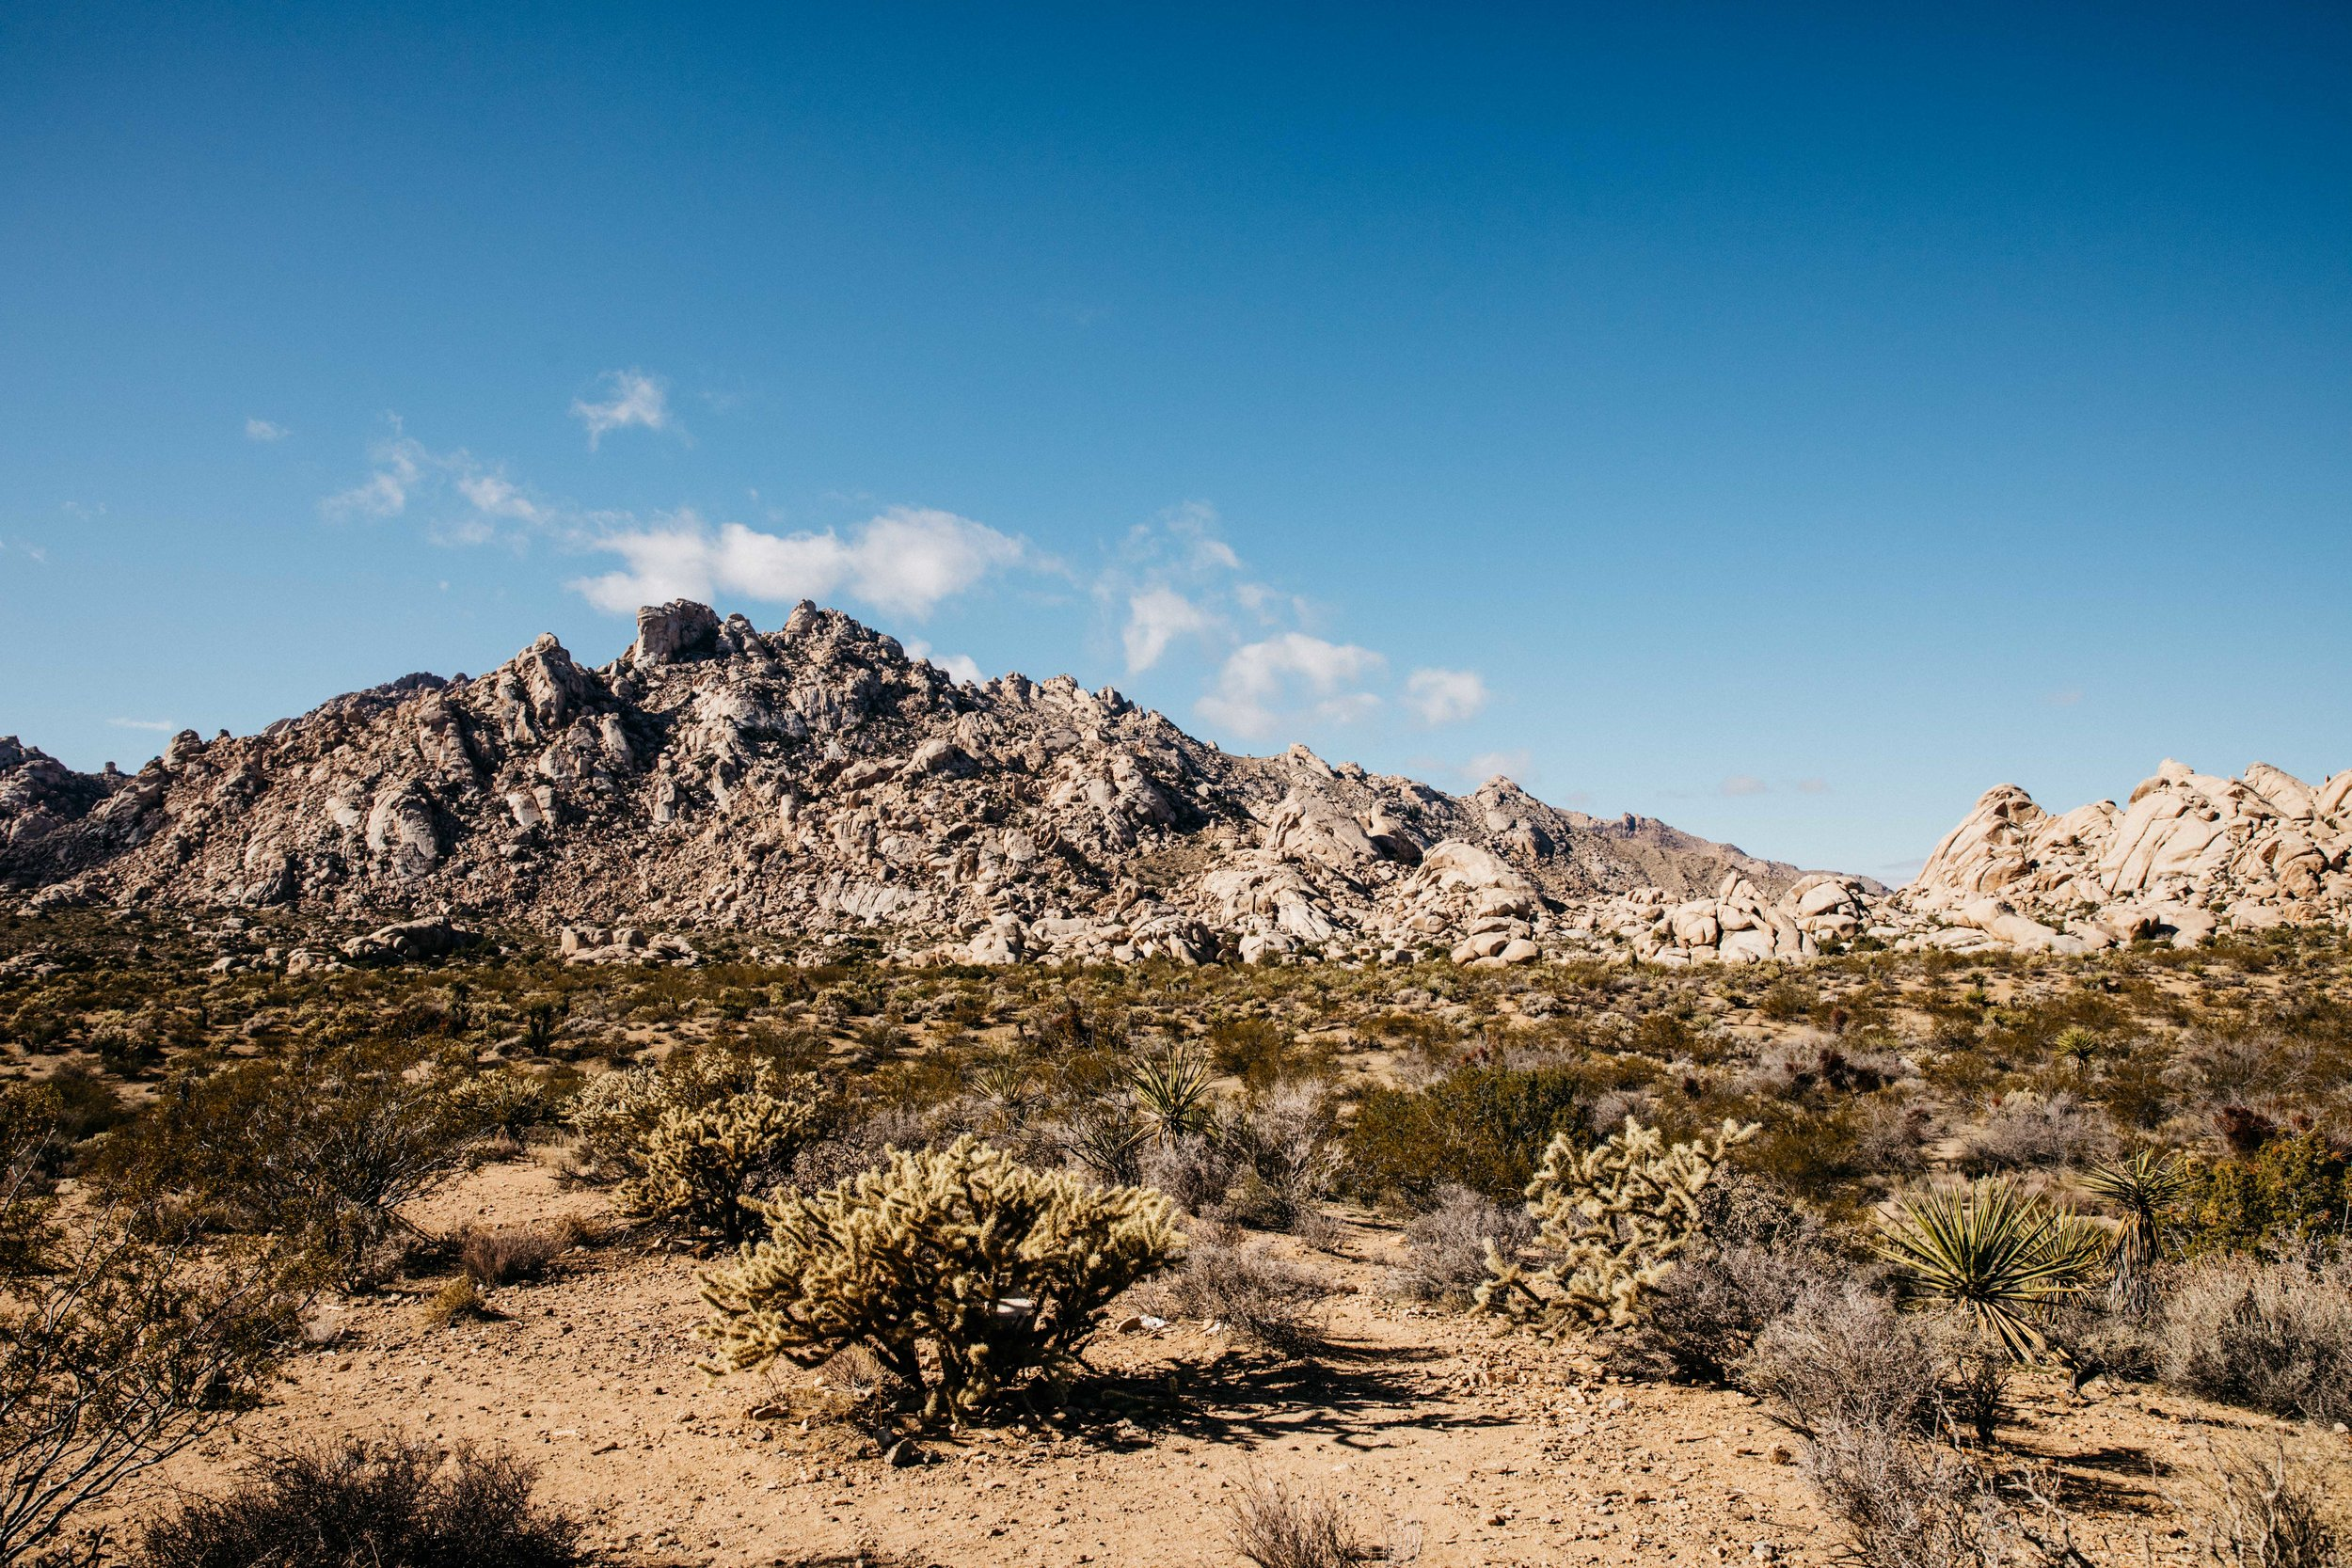 Things to do in the Mojave National Preserve